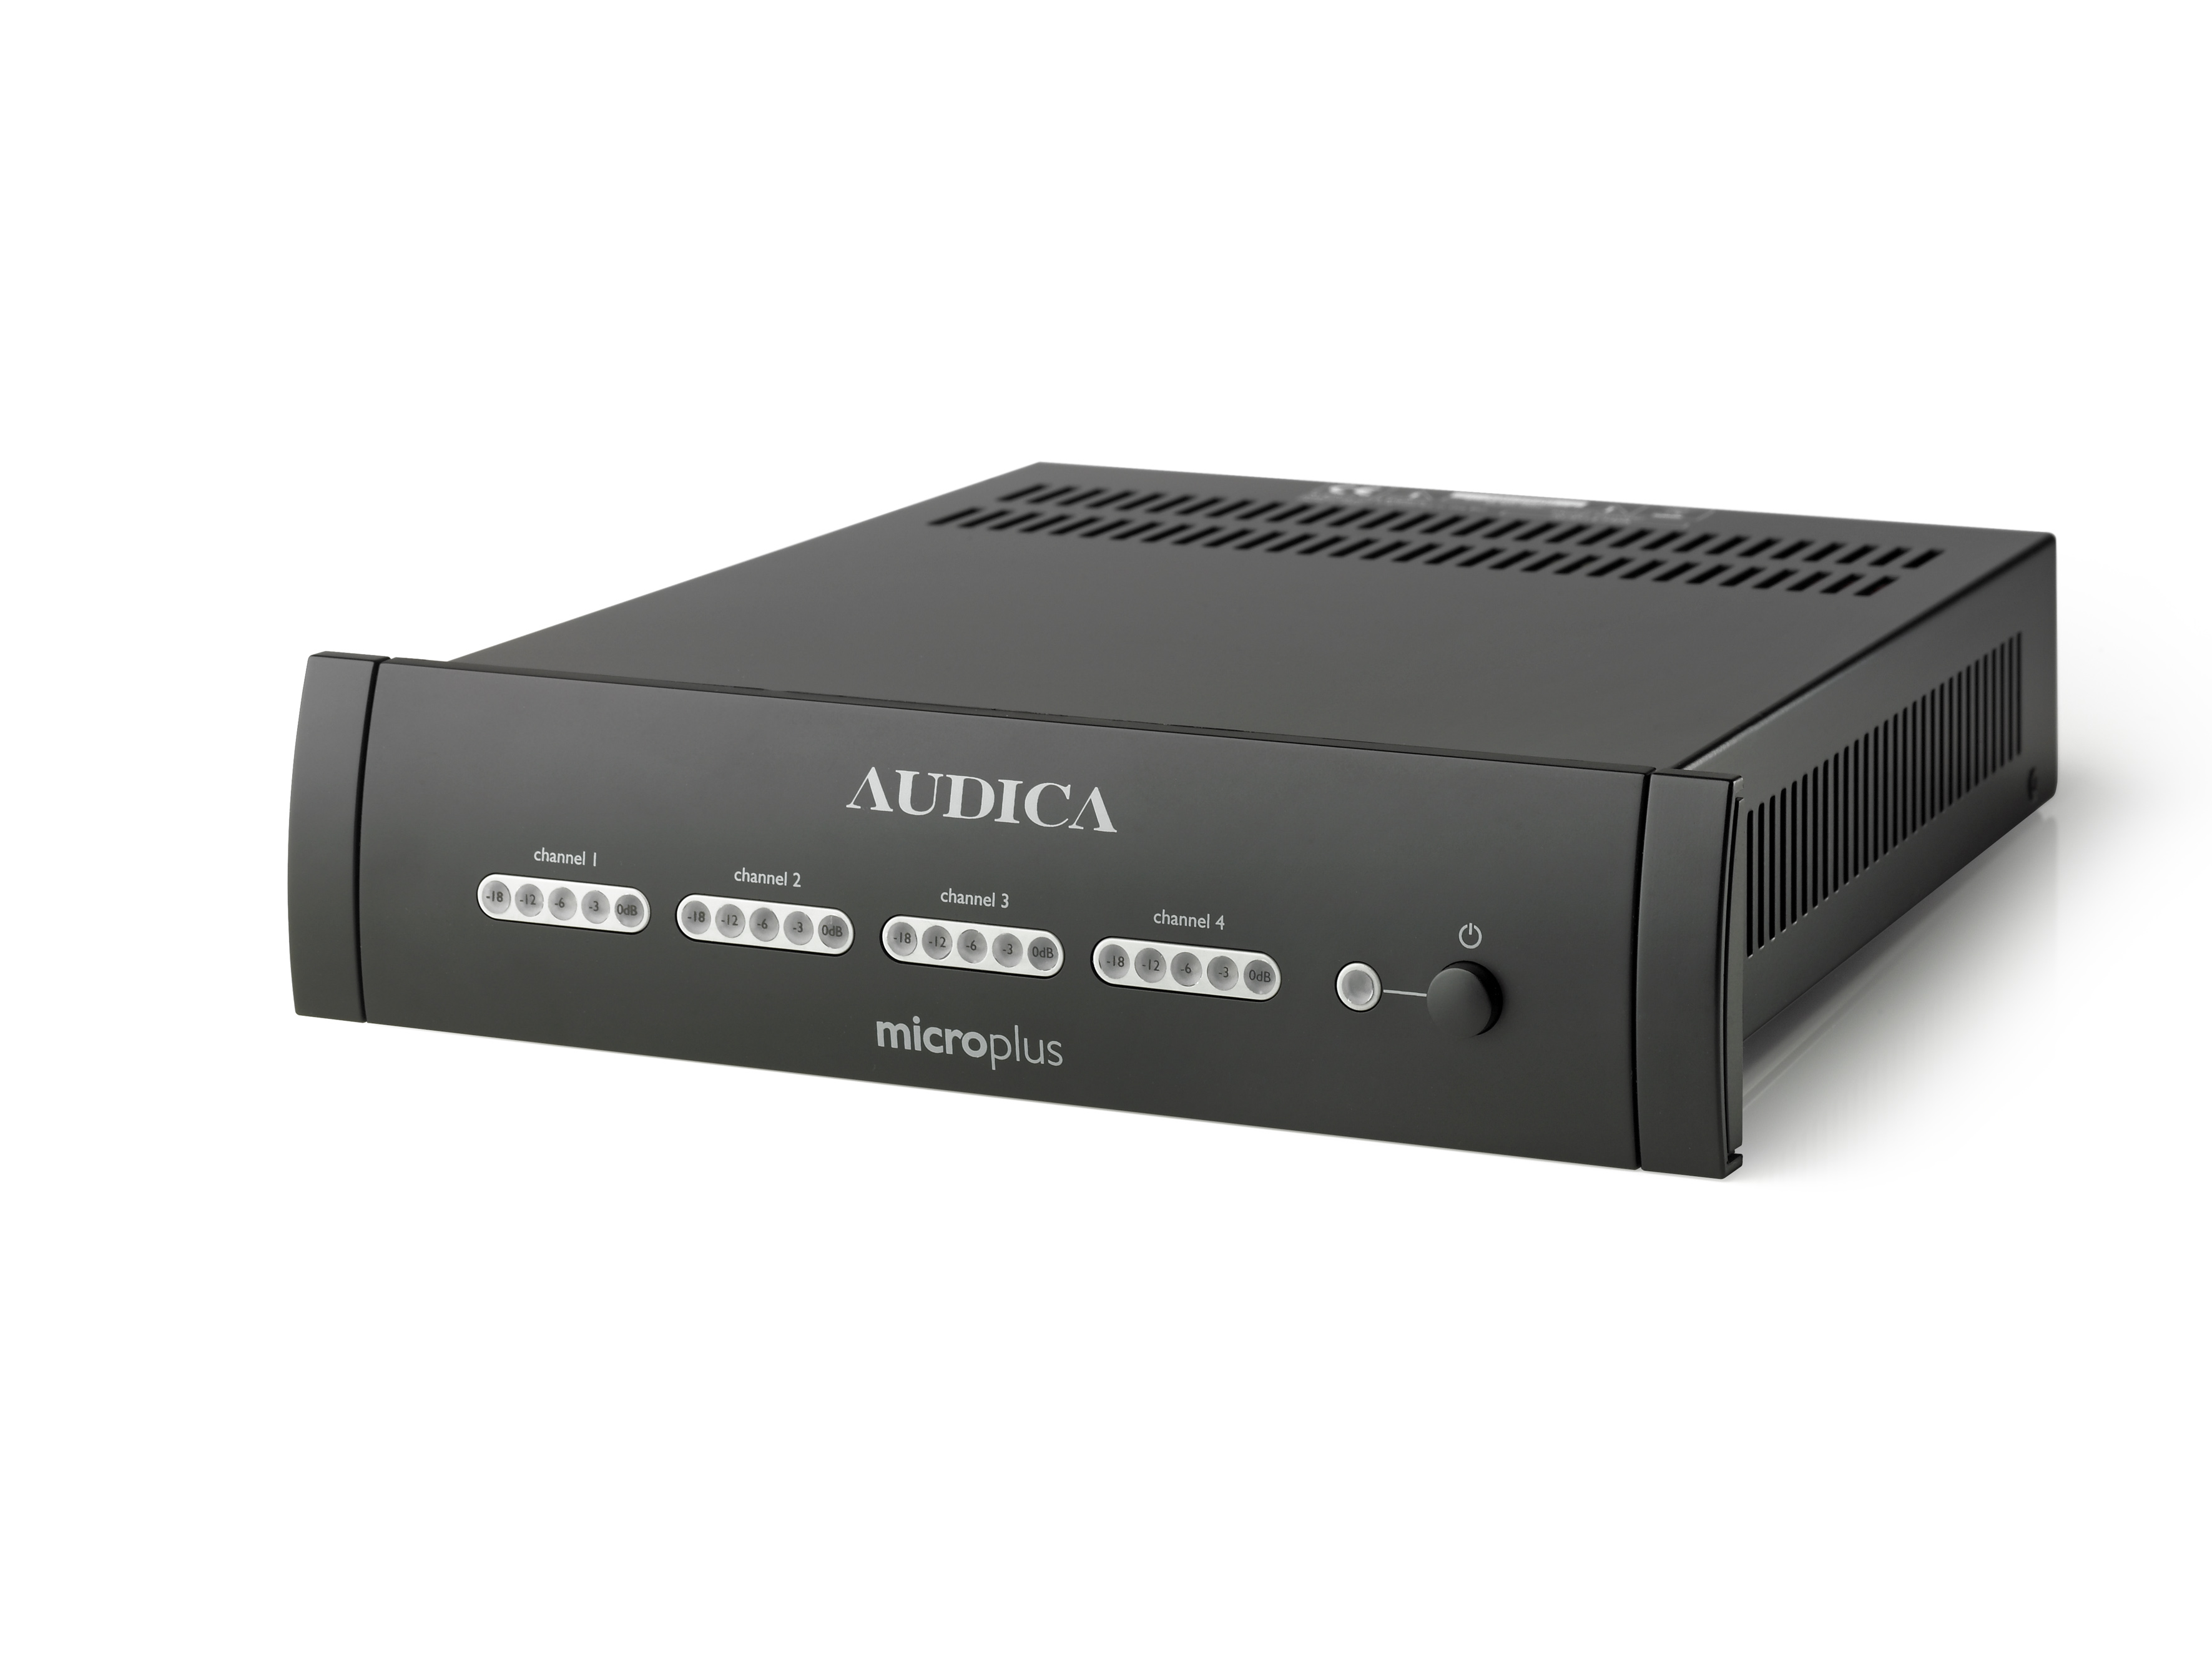 Audica Pro MicroPlus 4 Channel Power Amplifie Image | Metro Solutions